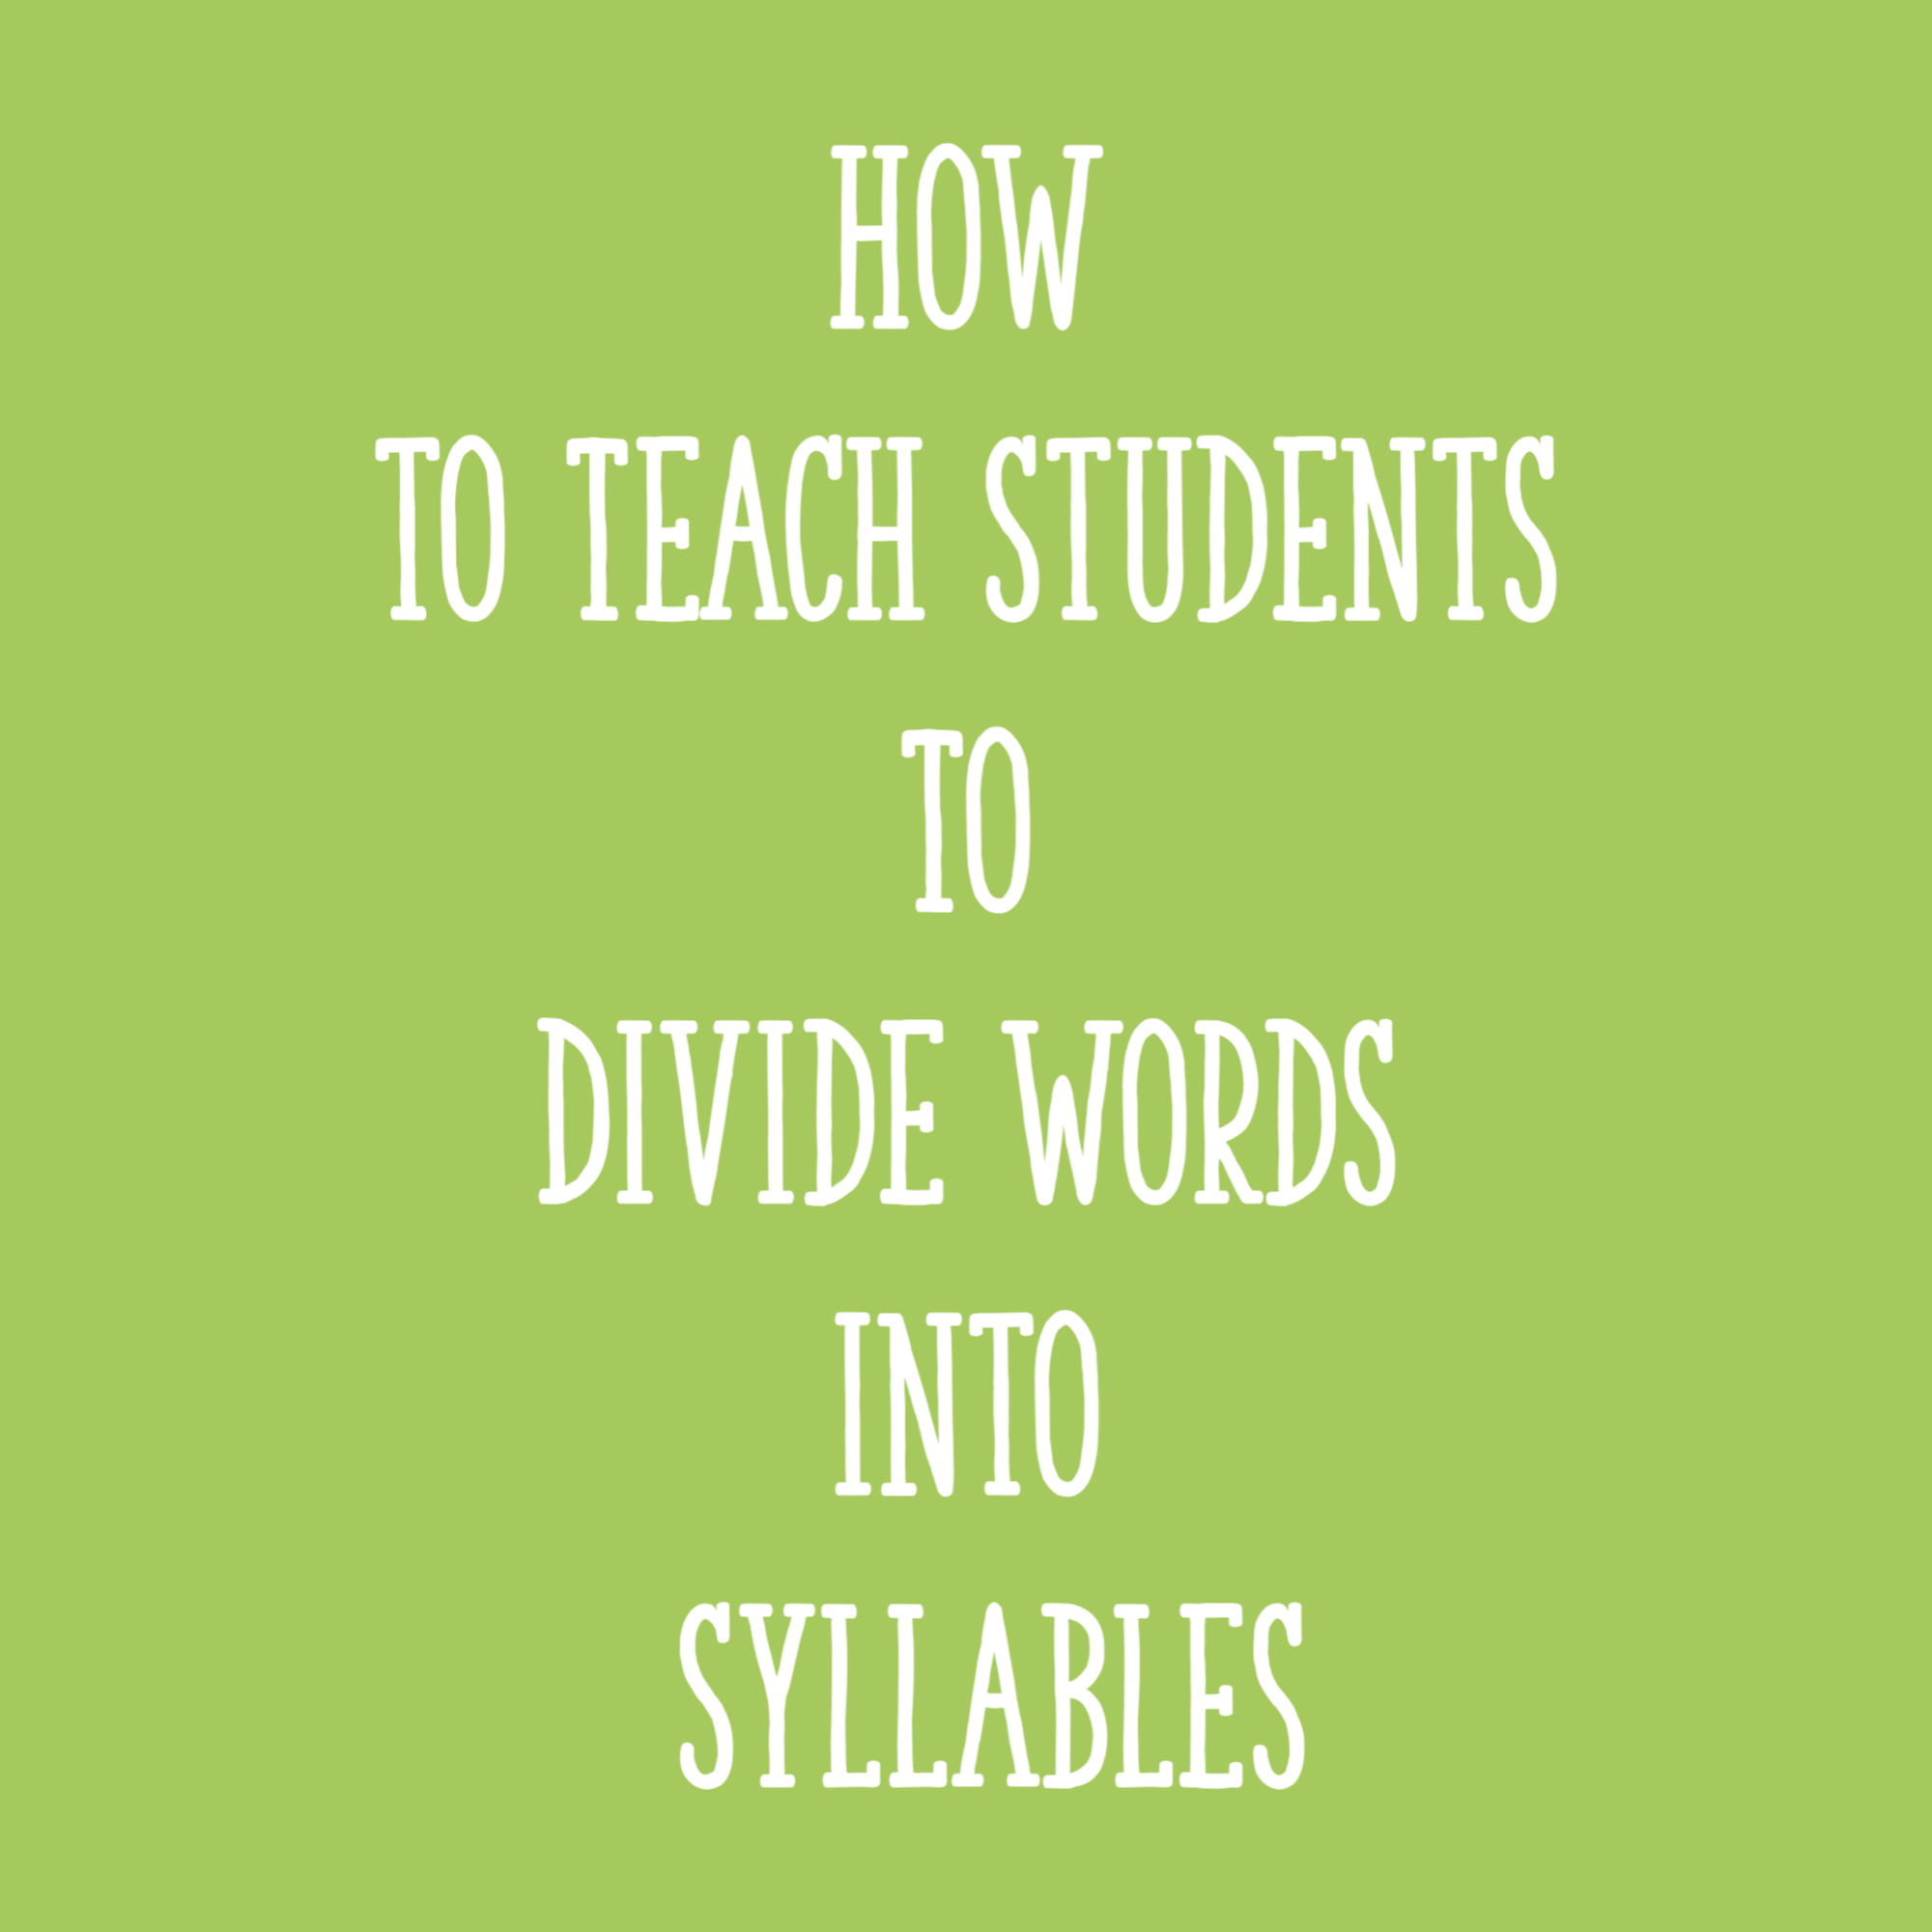 How To Teach Students To Divide Words Into Syllables